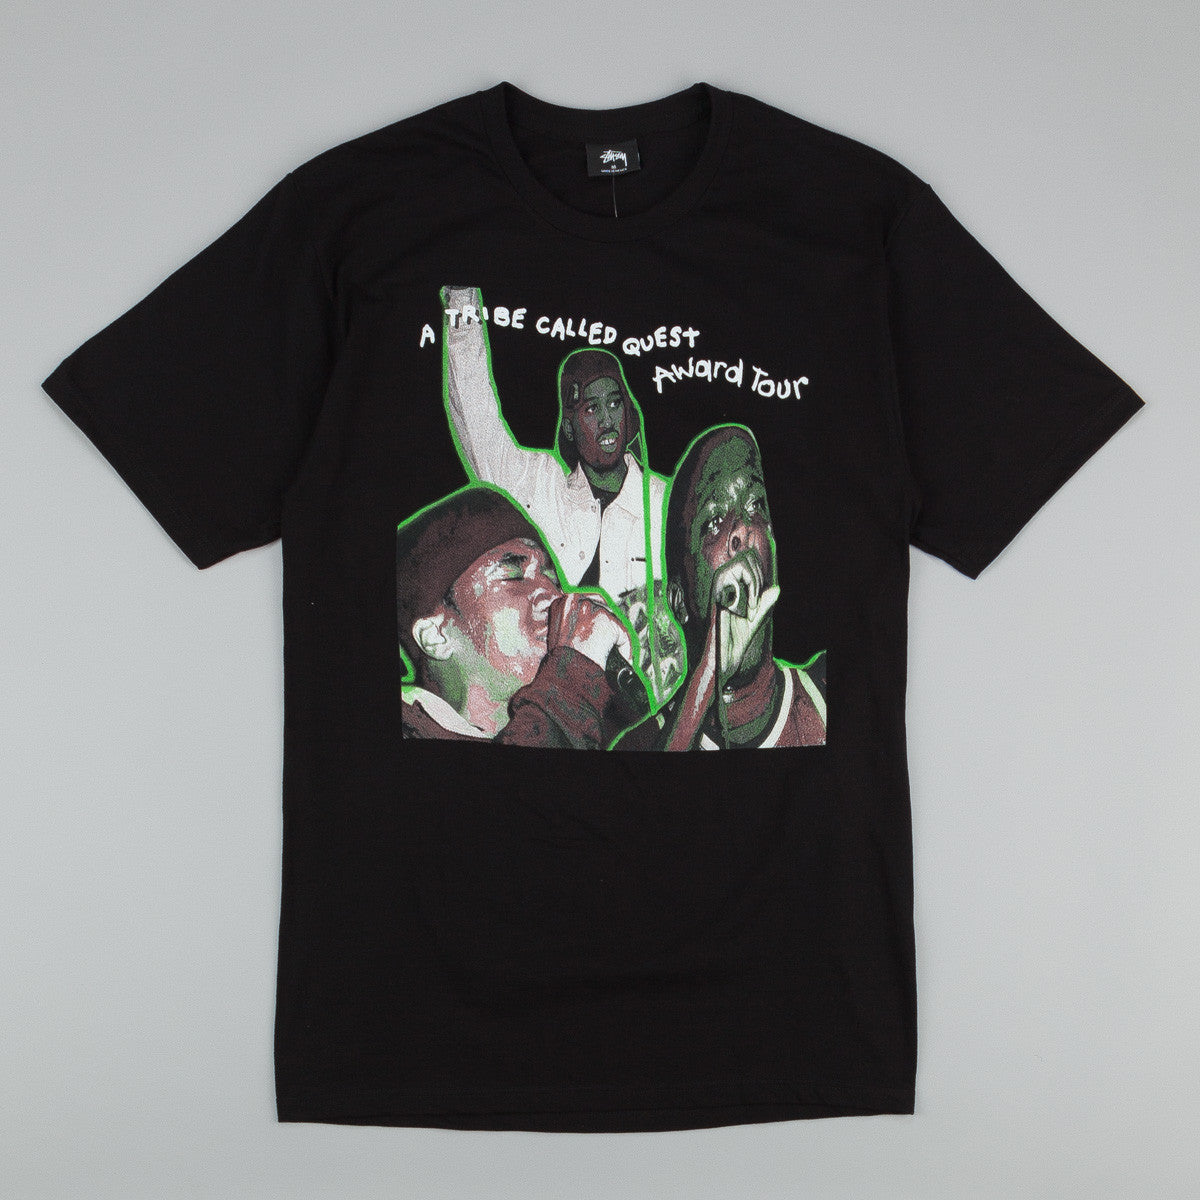 Stussy x ATCQ Award Tour T-Shirt